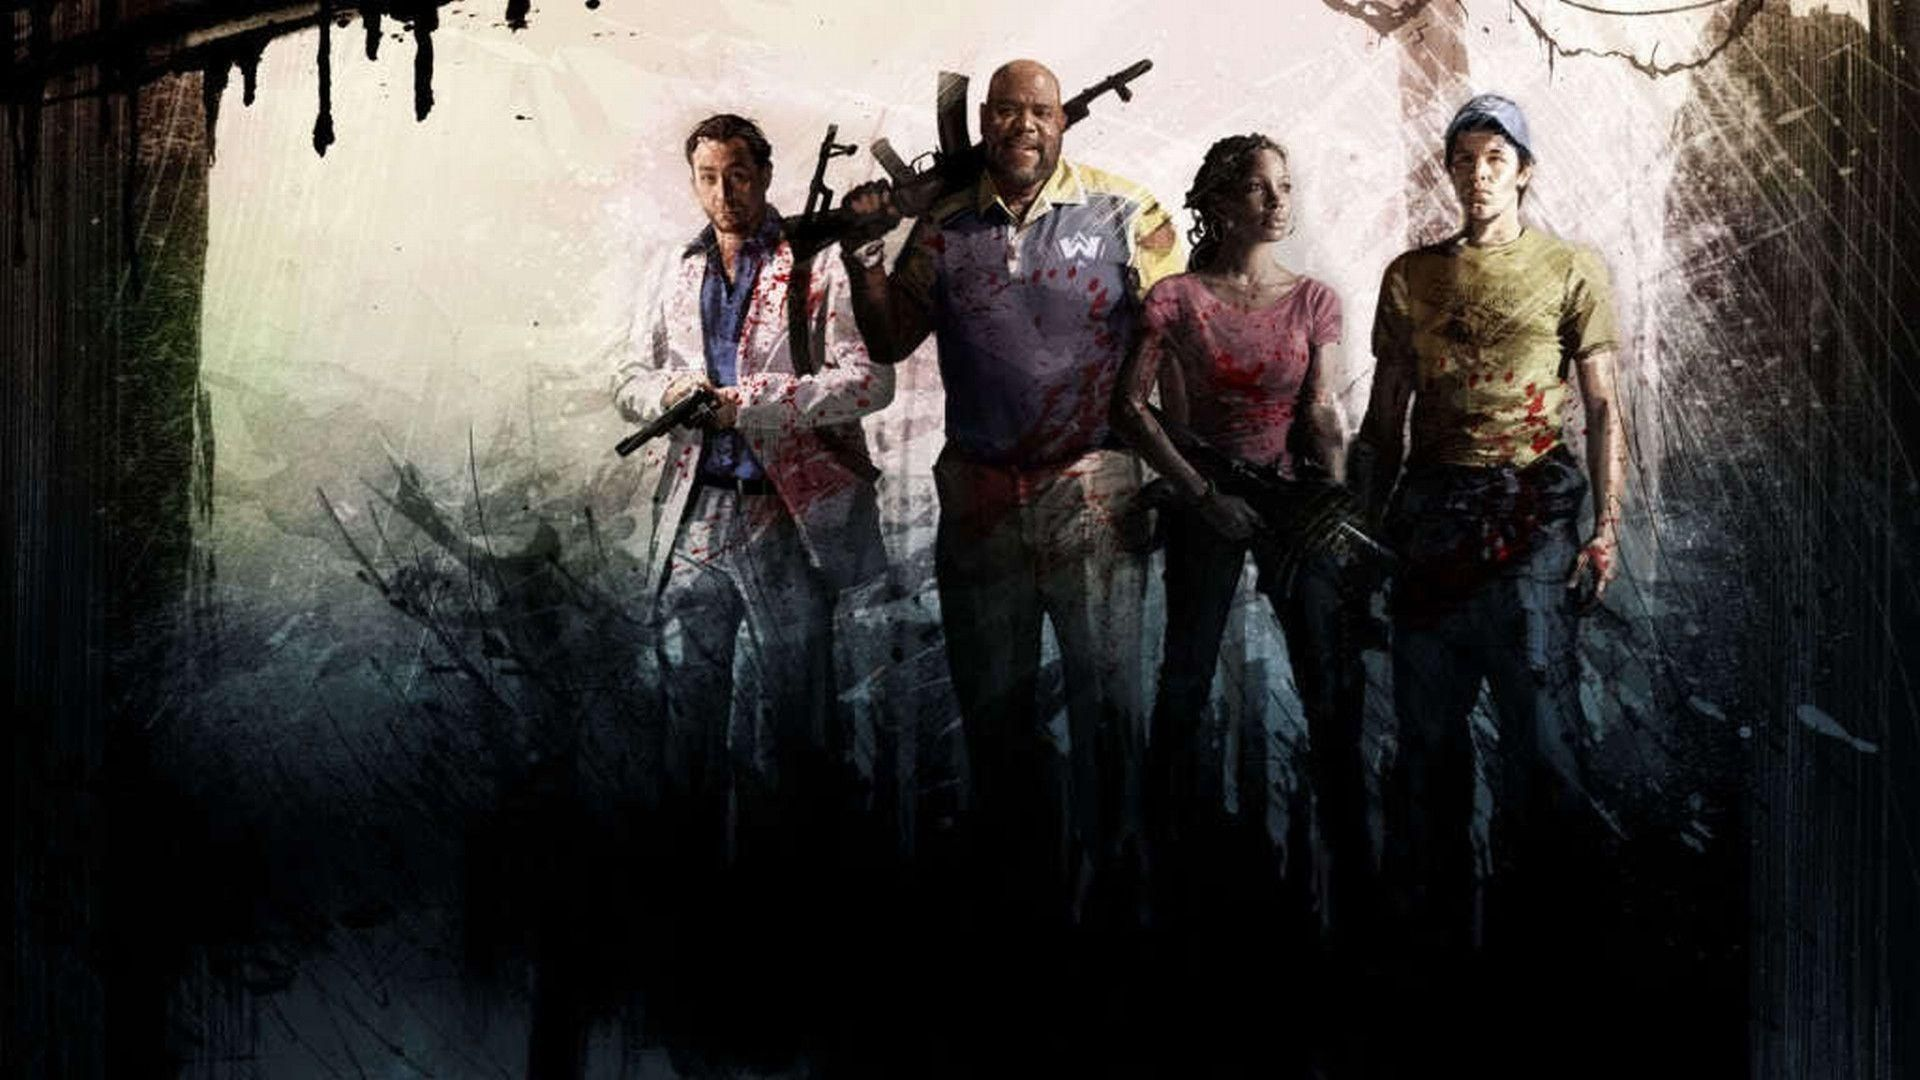 Left 4 Dead 3 Screenshots Reveal New Details About Cancelled Project Https Gamingbolt Com Left 4 Dead 3 Screenshots Reveal Left 4 Dead Dead Images Dead Space